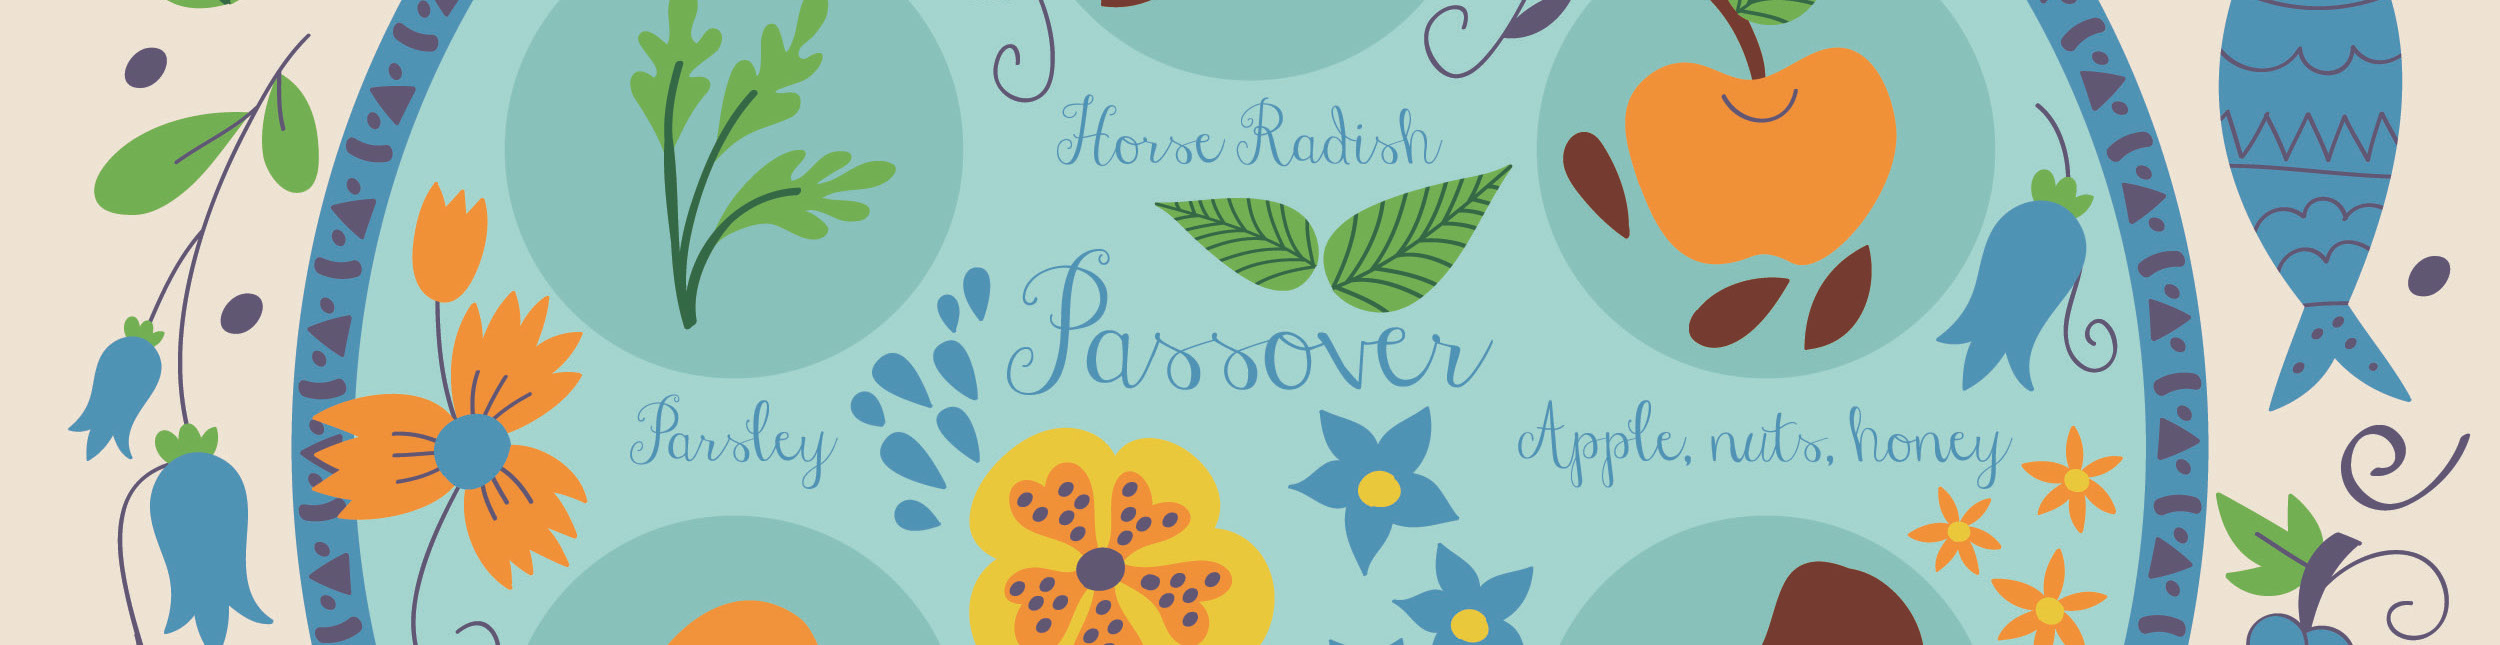 """<a href=""""https://www.woodburyjc.org/passover""""                                     target="""""""">                                                                 <span class=""""slider_title"""">                                     Passover at WJC                                </span>                                                                 </a>"""